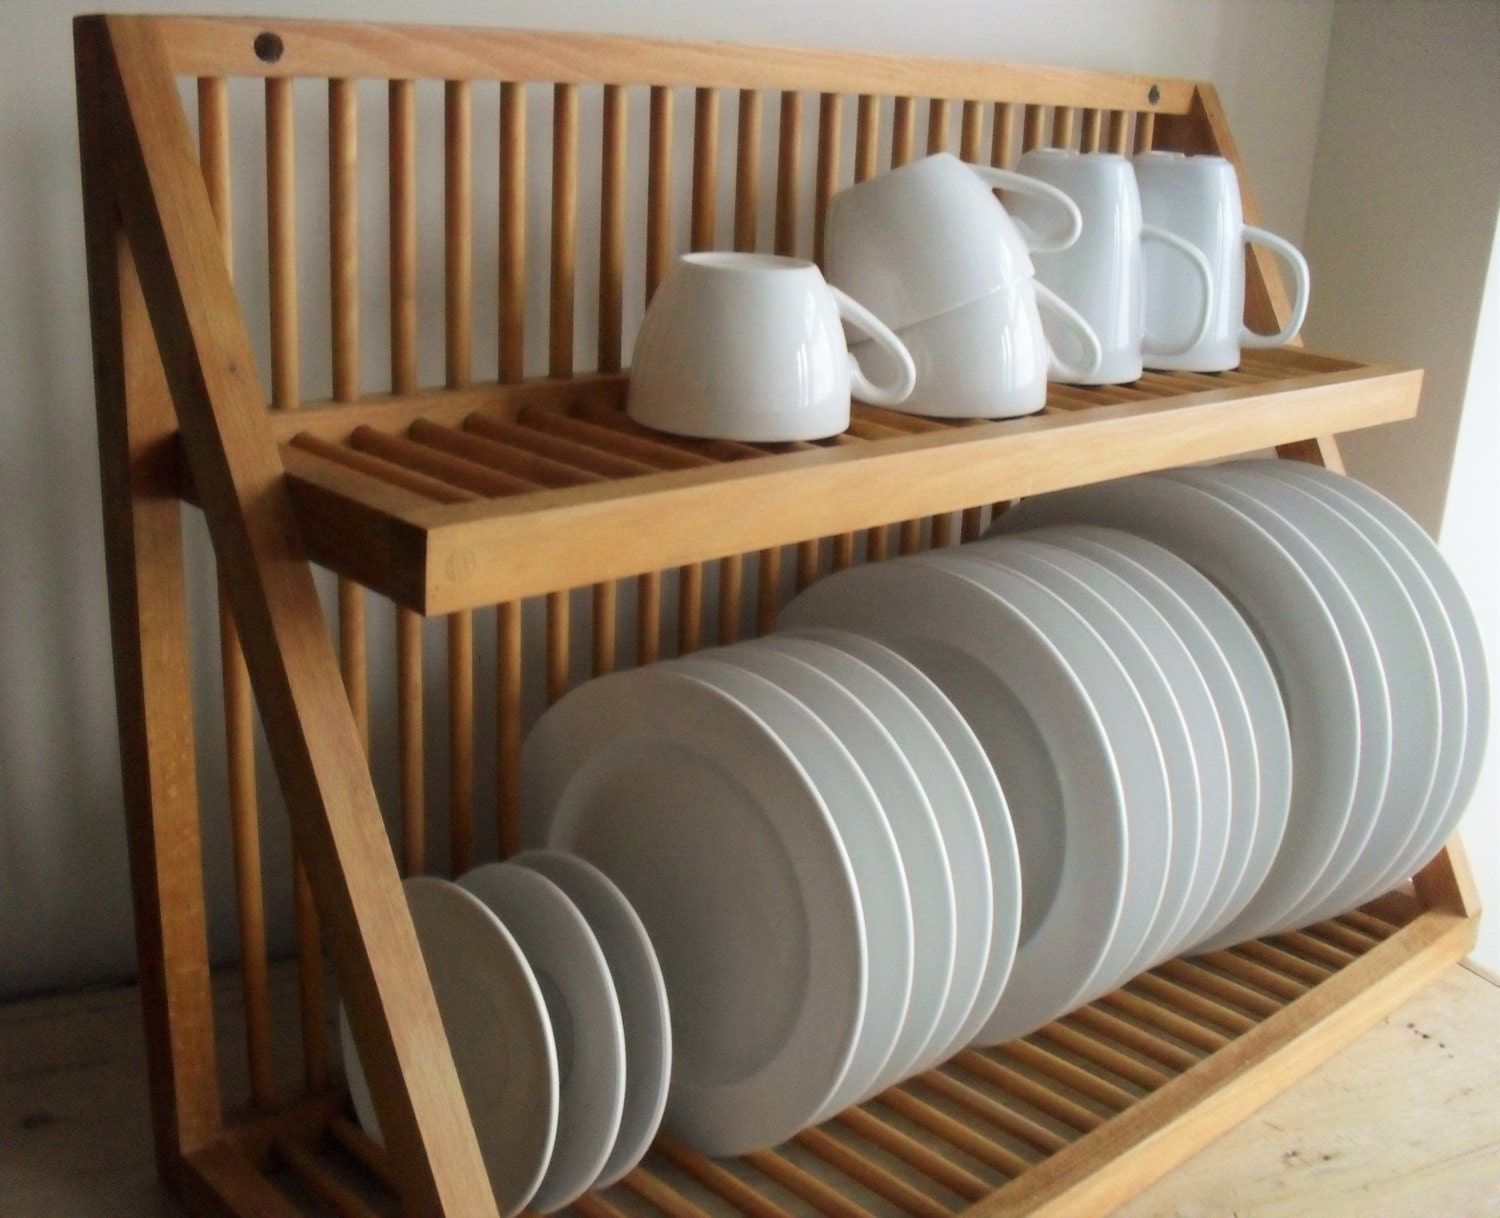 Reserved for a oak plate rack vintage wooden plate storage - Dish racks for small spaces set ...